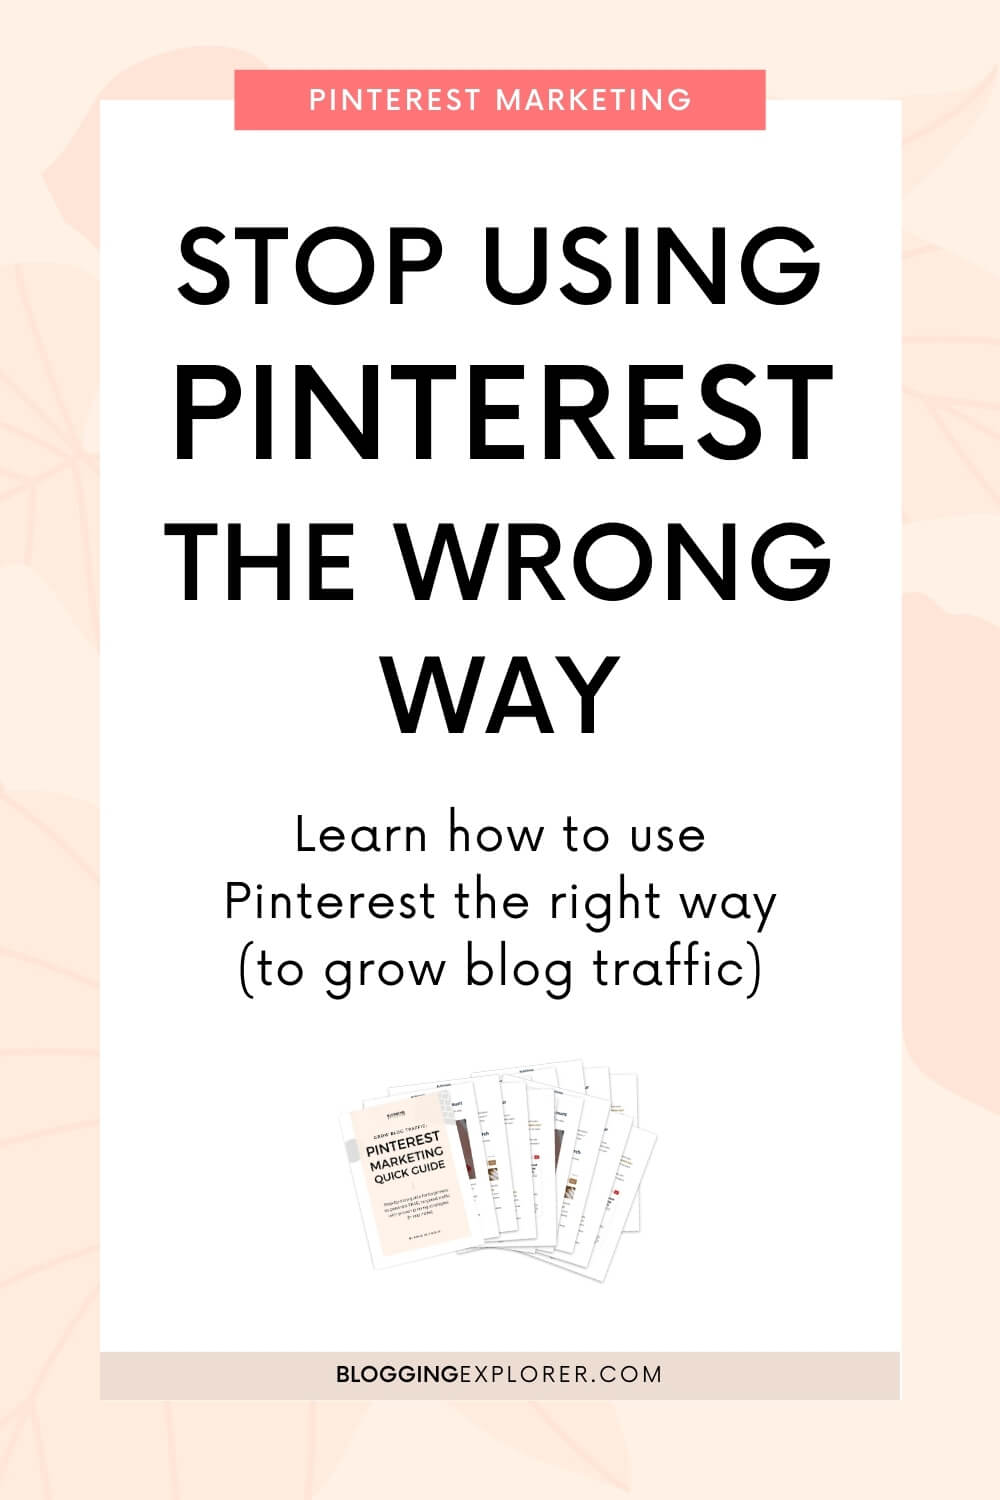 Is Pinterest social media and why you should care - Blogging Explorer